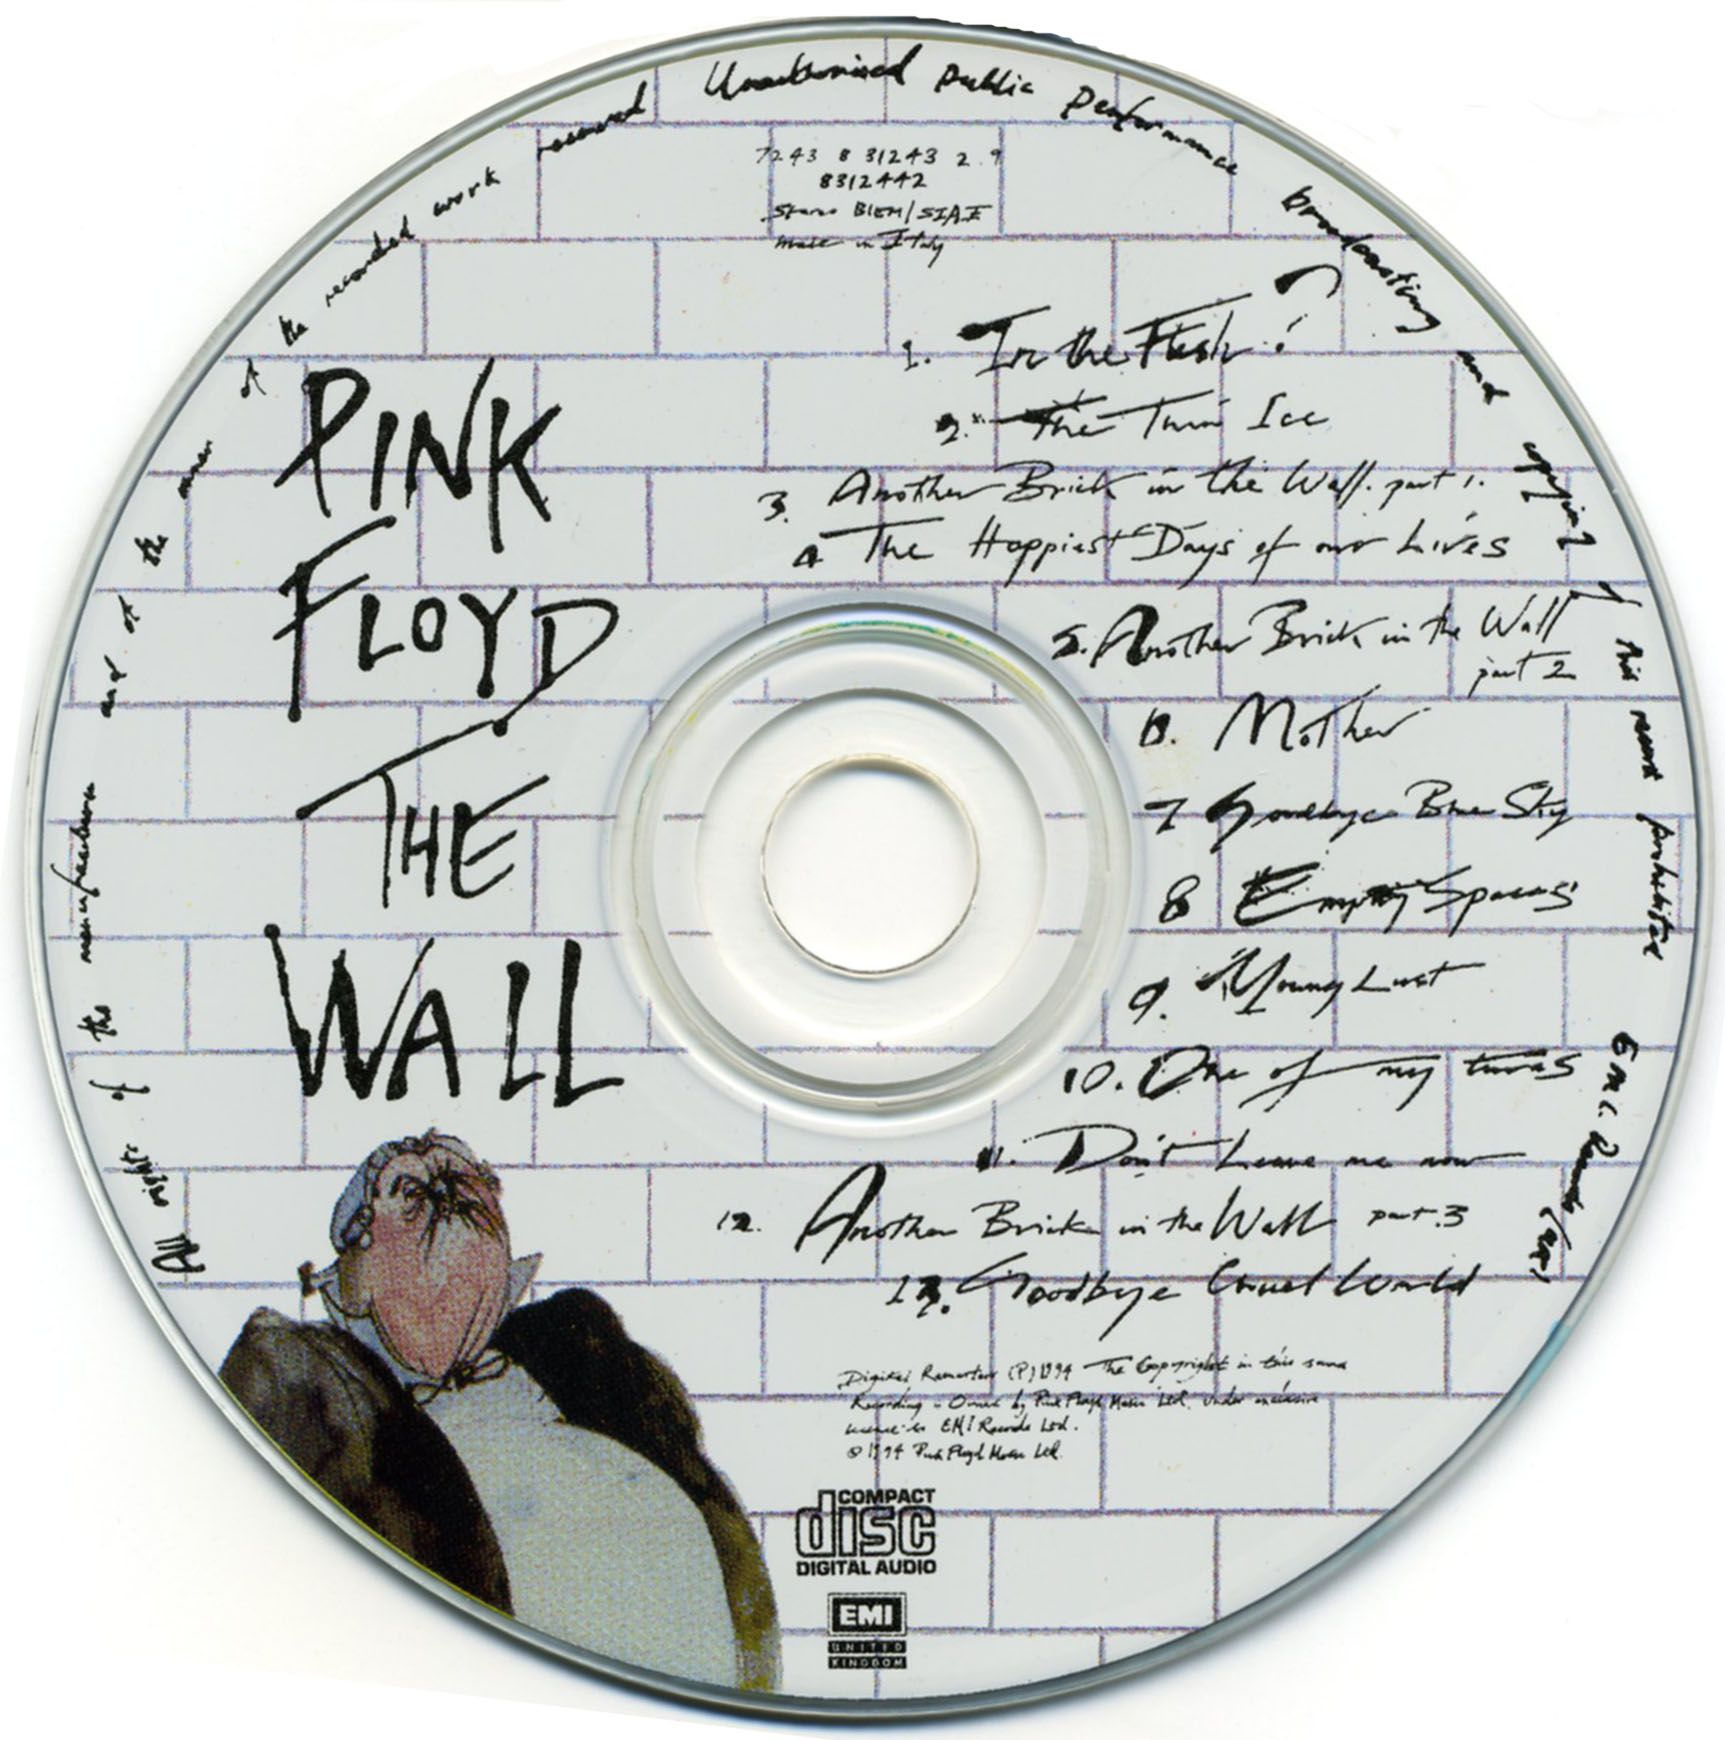 The Wall Pink Floyd: Pink Floyd Simply Timeless .....